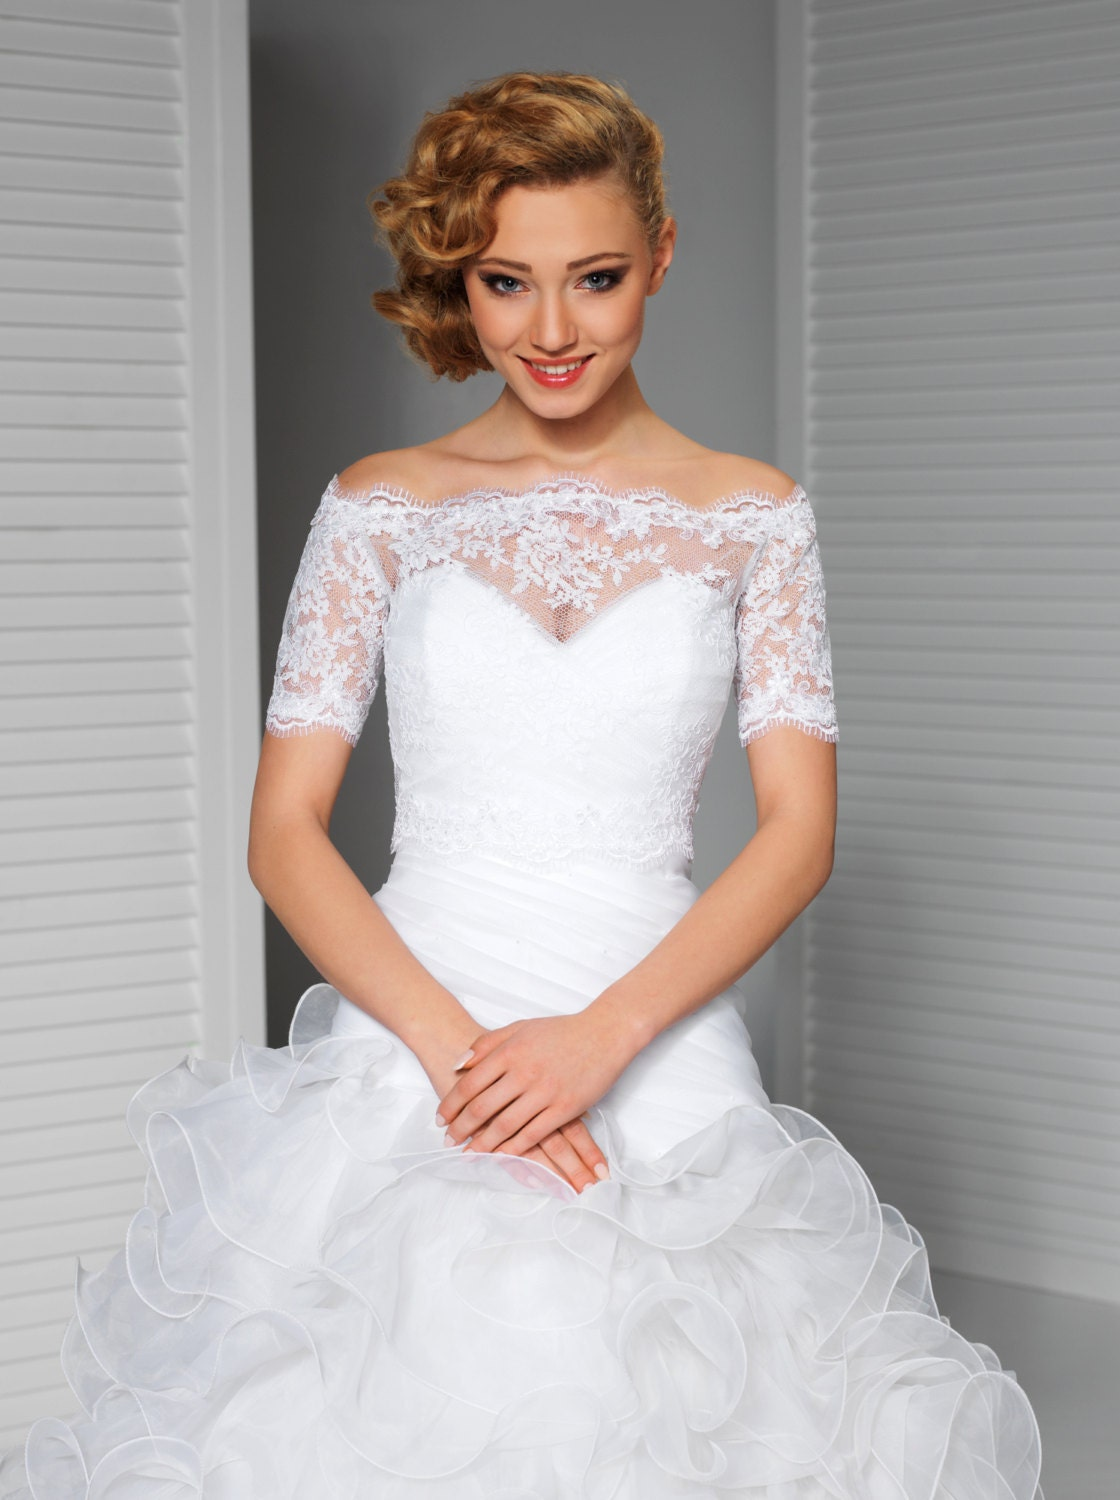 Lace bridal topper in ivory or white for Wedding dresses off white lace